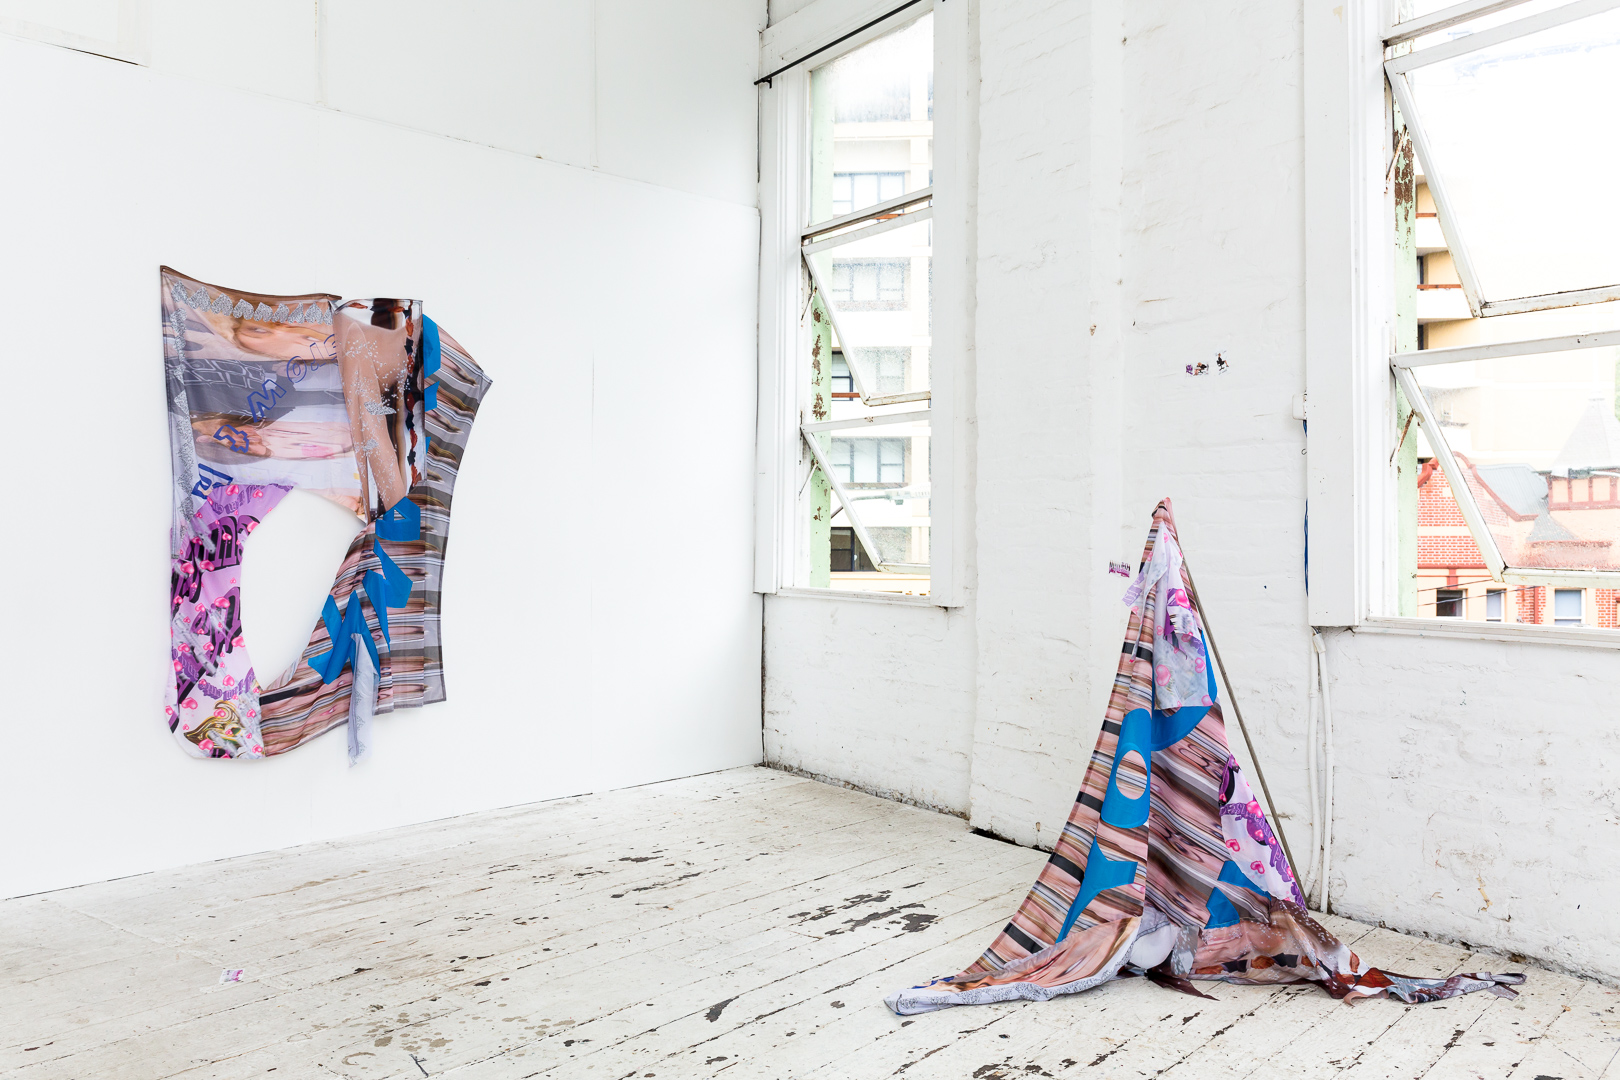 Dreams of an Assistant II  (background), (2018), digital print on polyester ; Dreams of an Assistant III  (foreground), (2018), digital print on polyester, stainless steel rods, installation view,  Number One Assistant,  Kyra's, Sydney. Photo: Document Photography